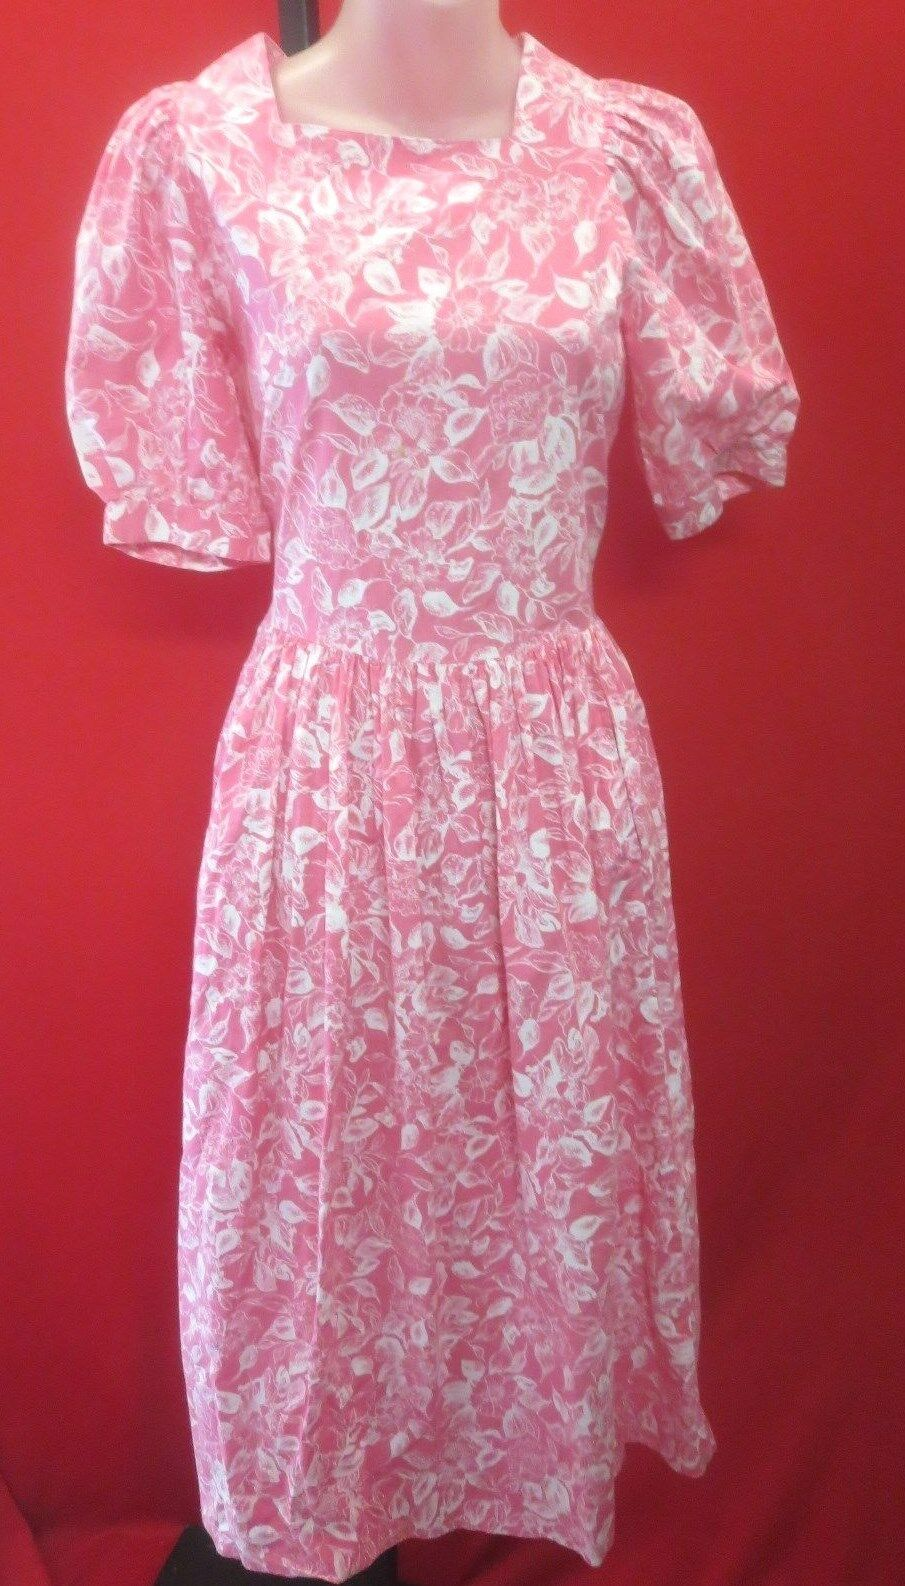 Vtg LAURA ASHLEY Pink White Floral Full Circle School Girl Peasant Dress Sz 10